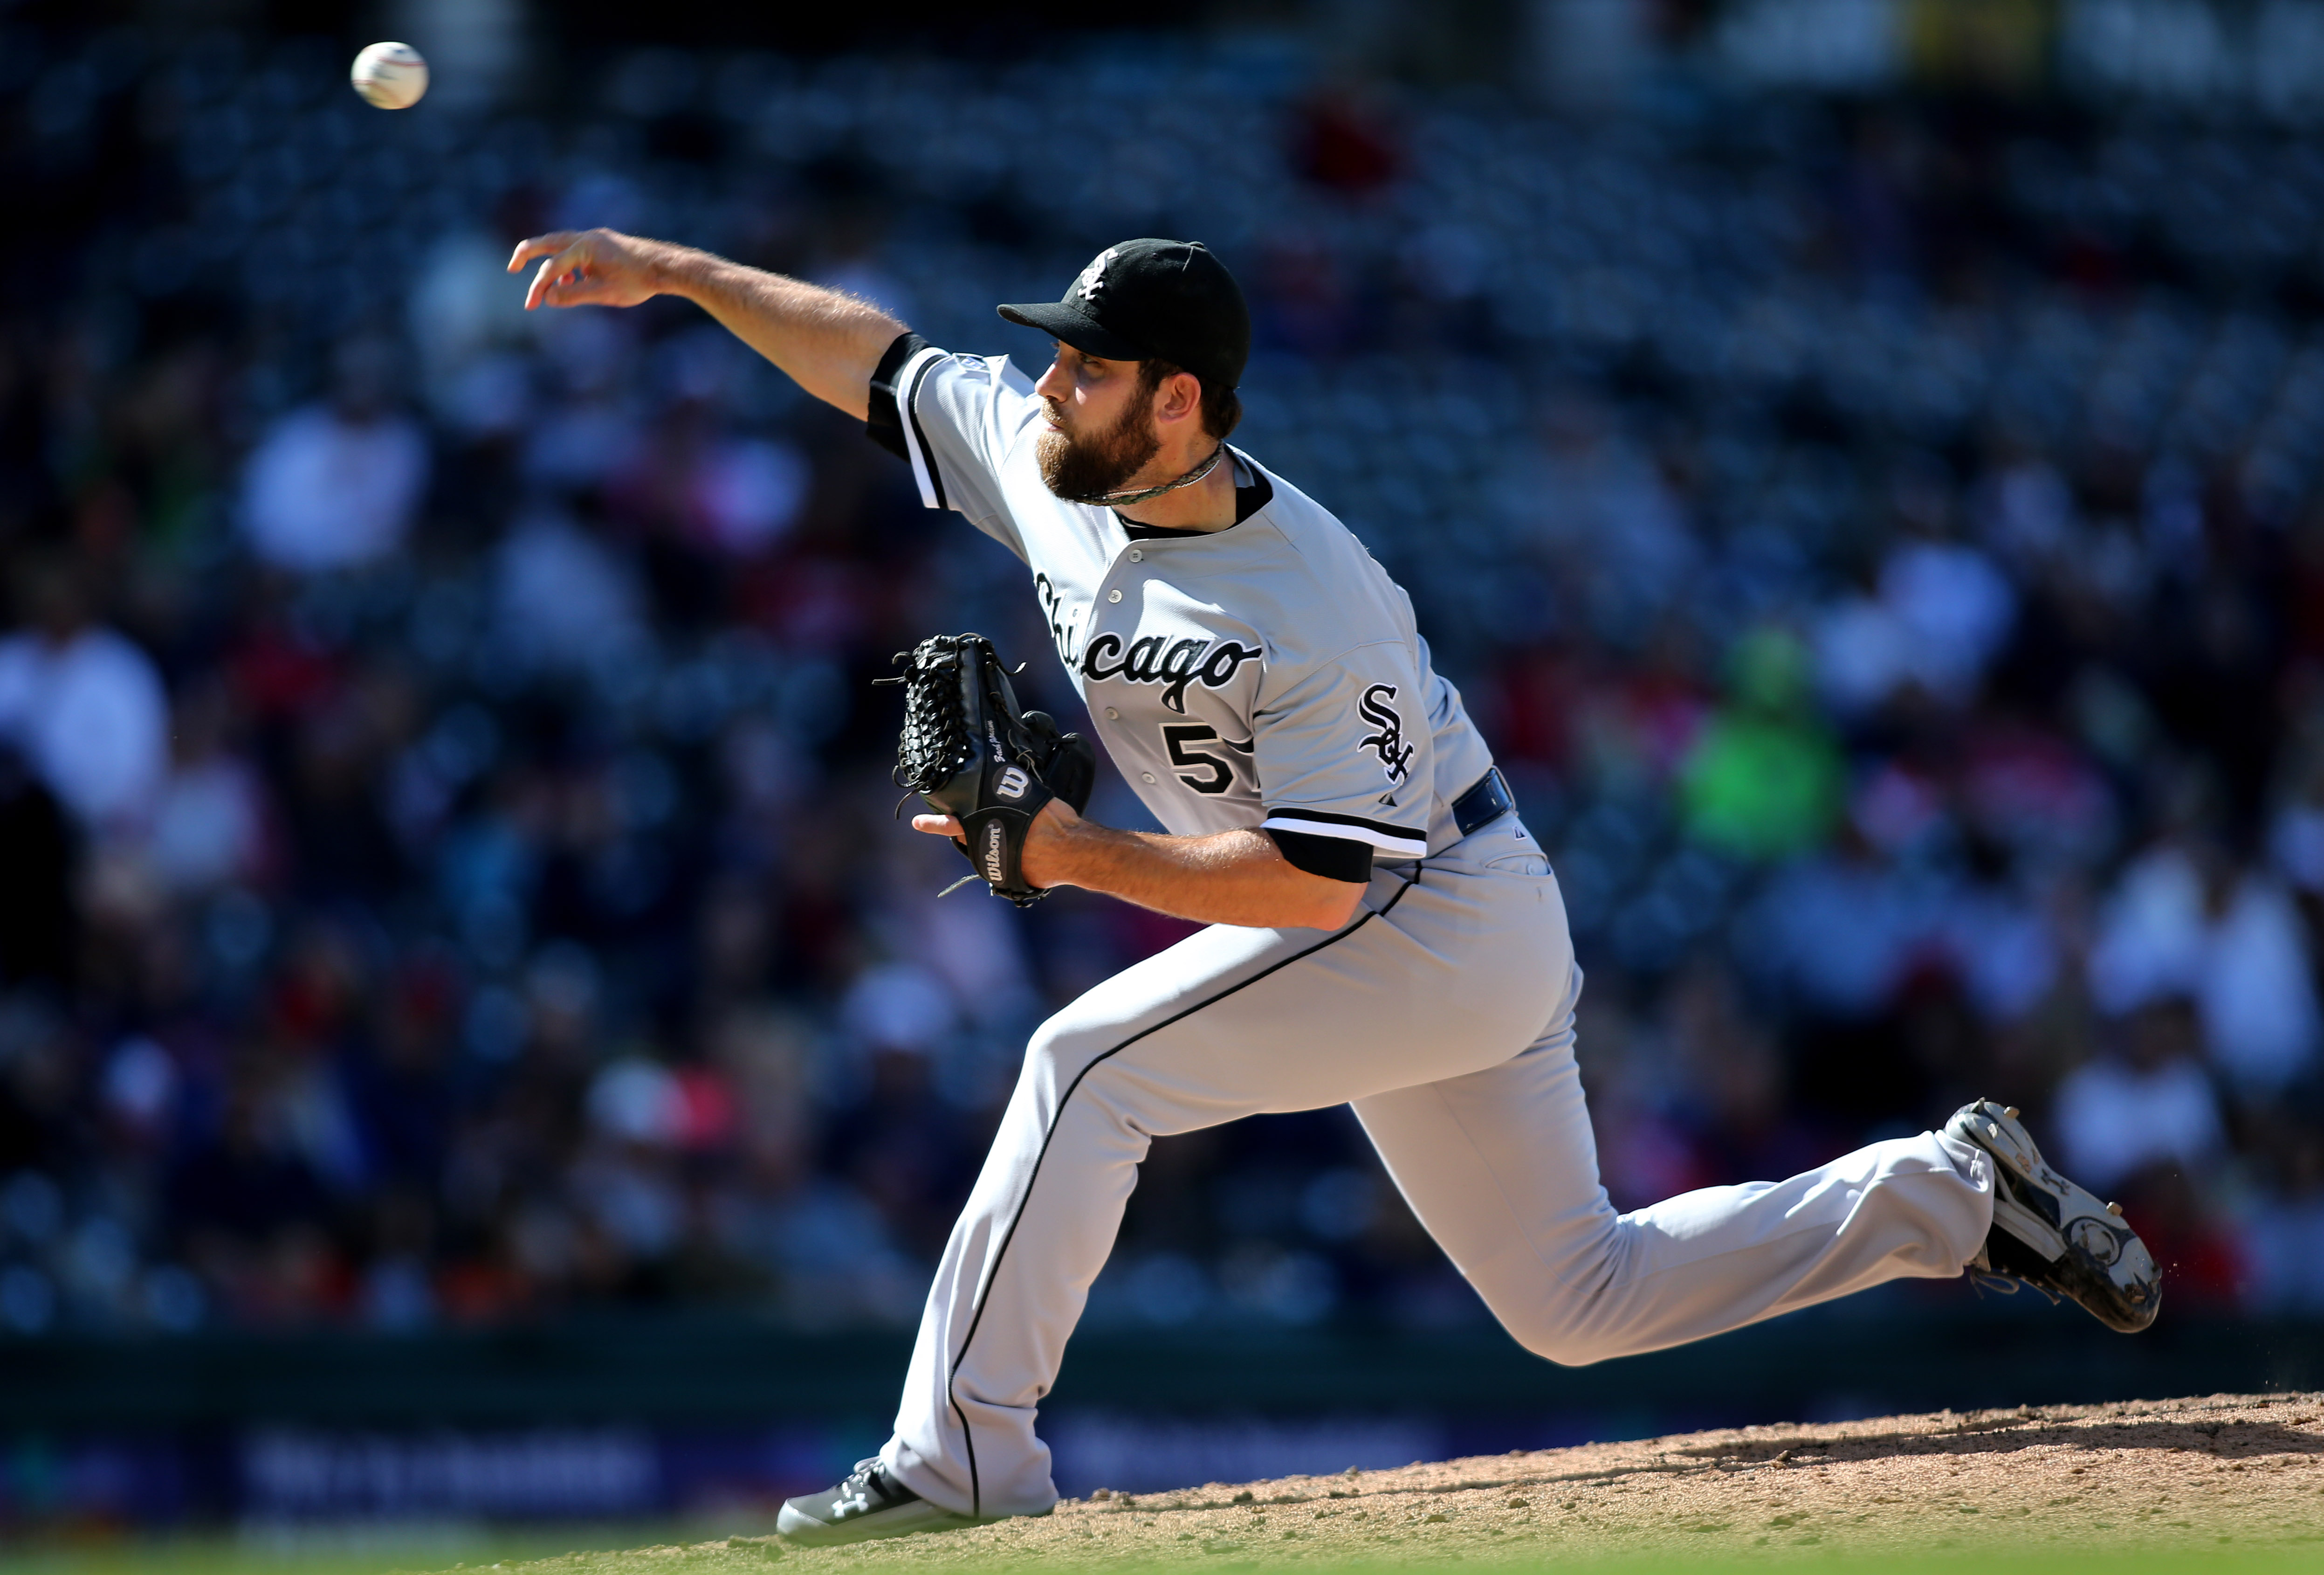 Chicago White Sox relief pitcher Zach Putnam throws to the plate during the sixth inning of a baseball game against the Cleveland Indians, Sunday, Sept. 20, 2015, in Cleveland. (AP Photo/Aaron Josefczyk)